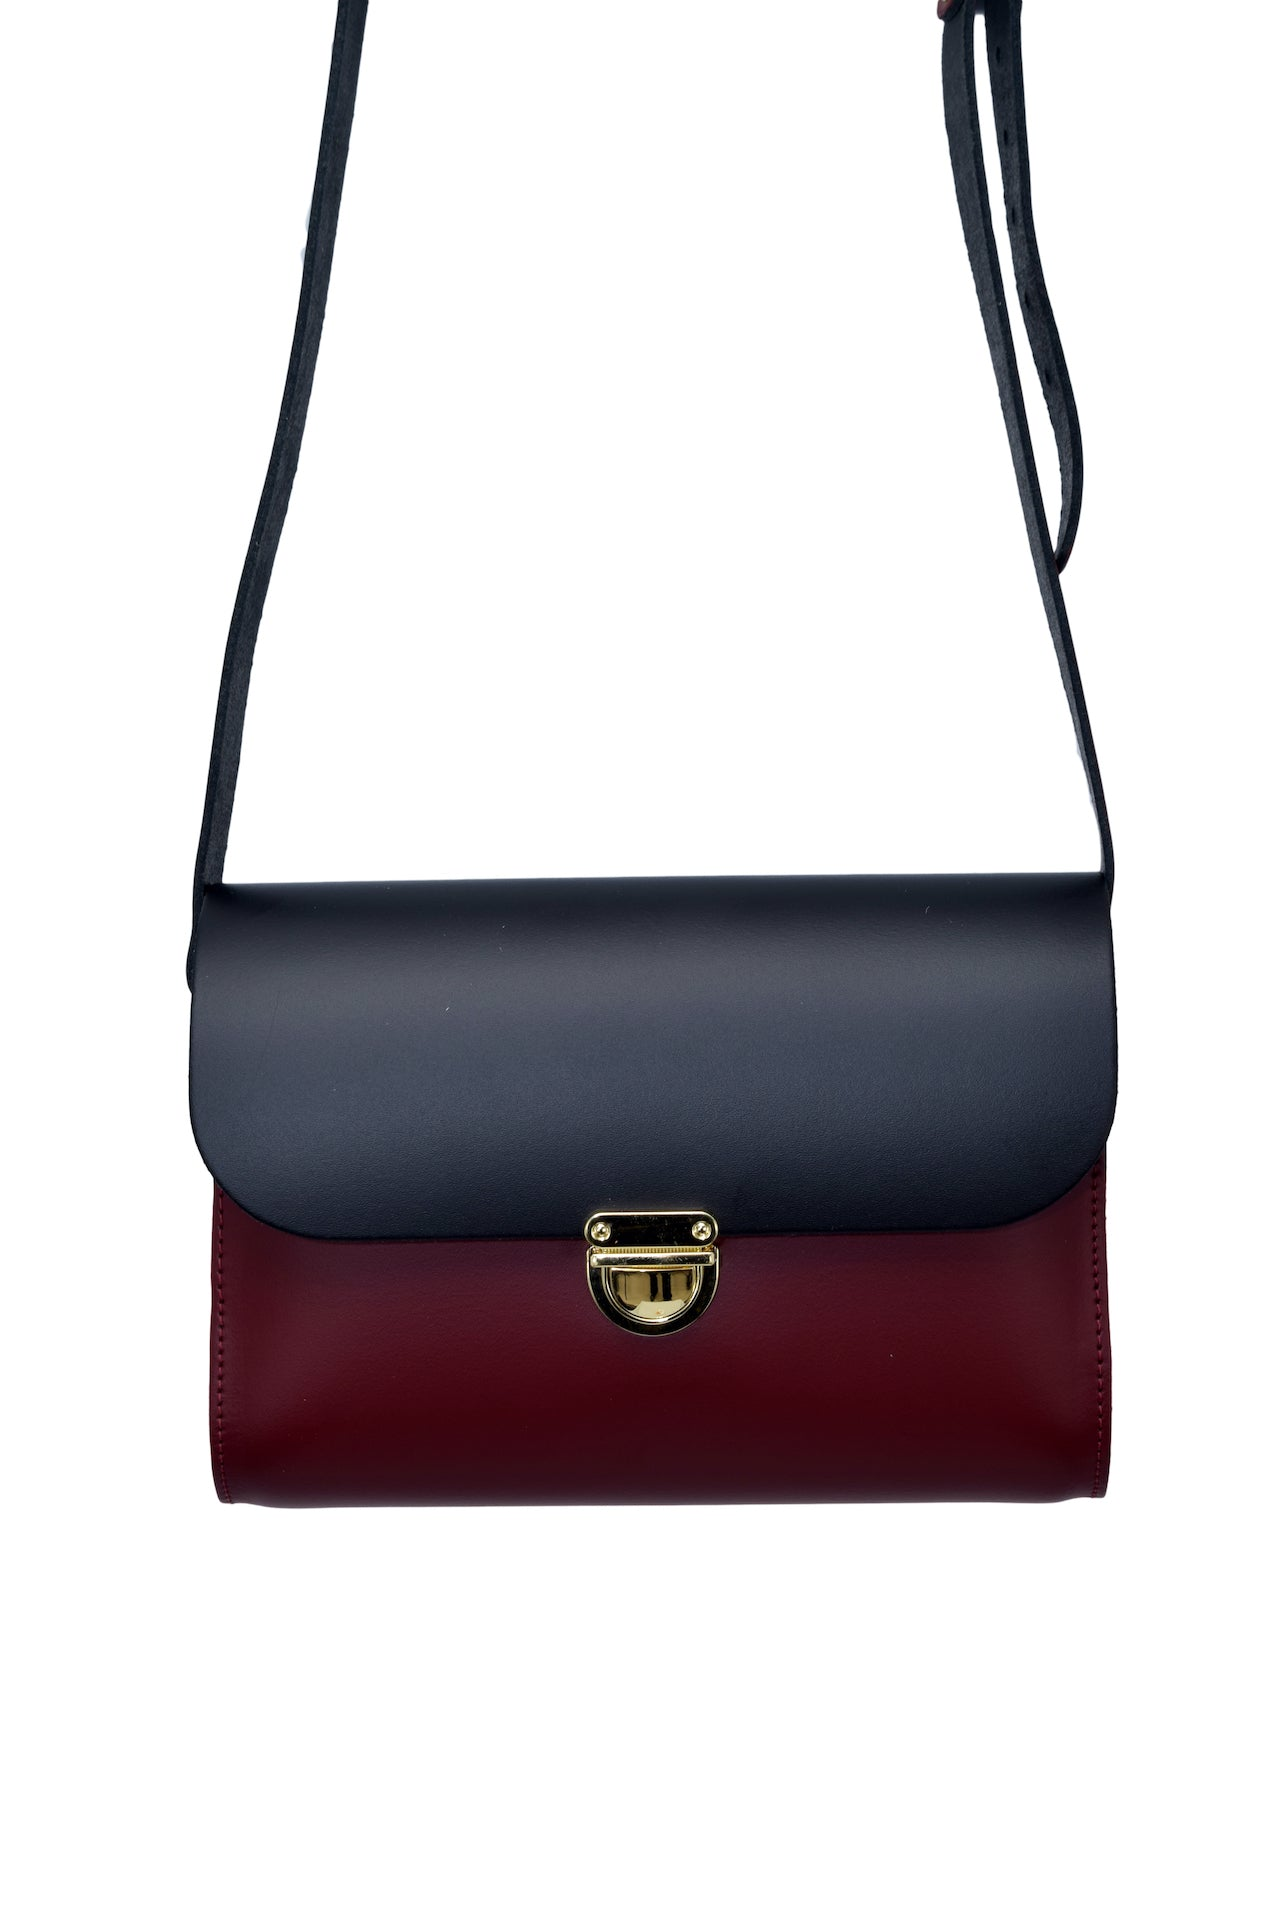 Black and Burgundy Handmade Womens Small Leather Satchel Cross Body Classic Handbag. Can be personalised with initials.